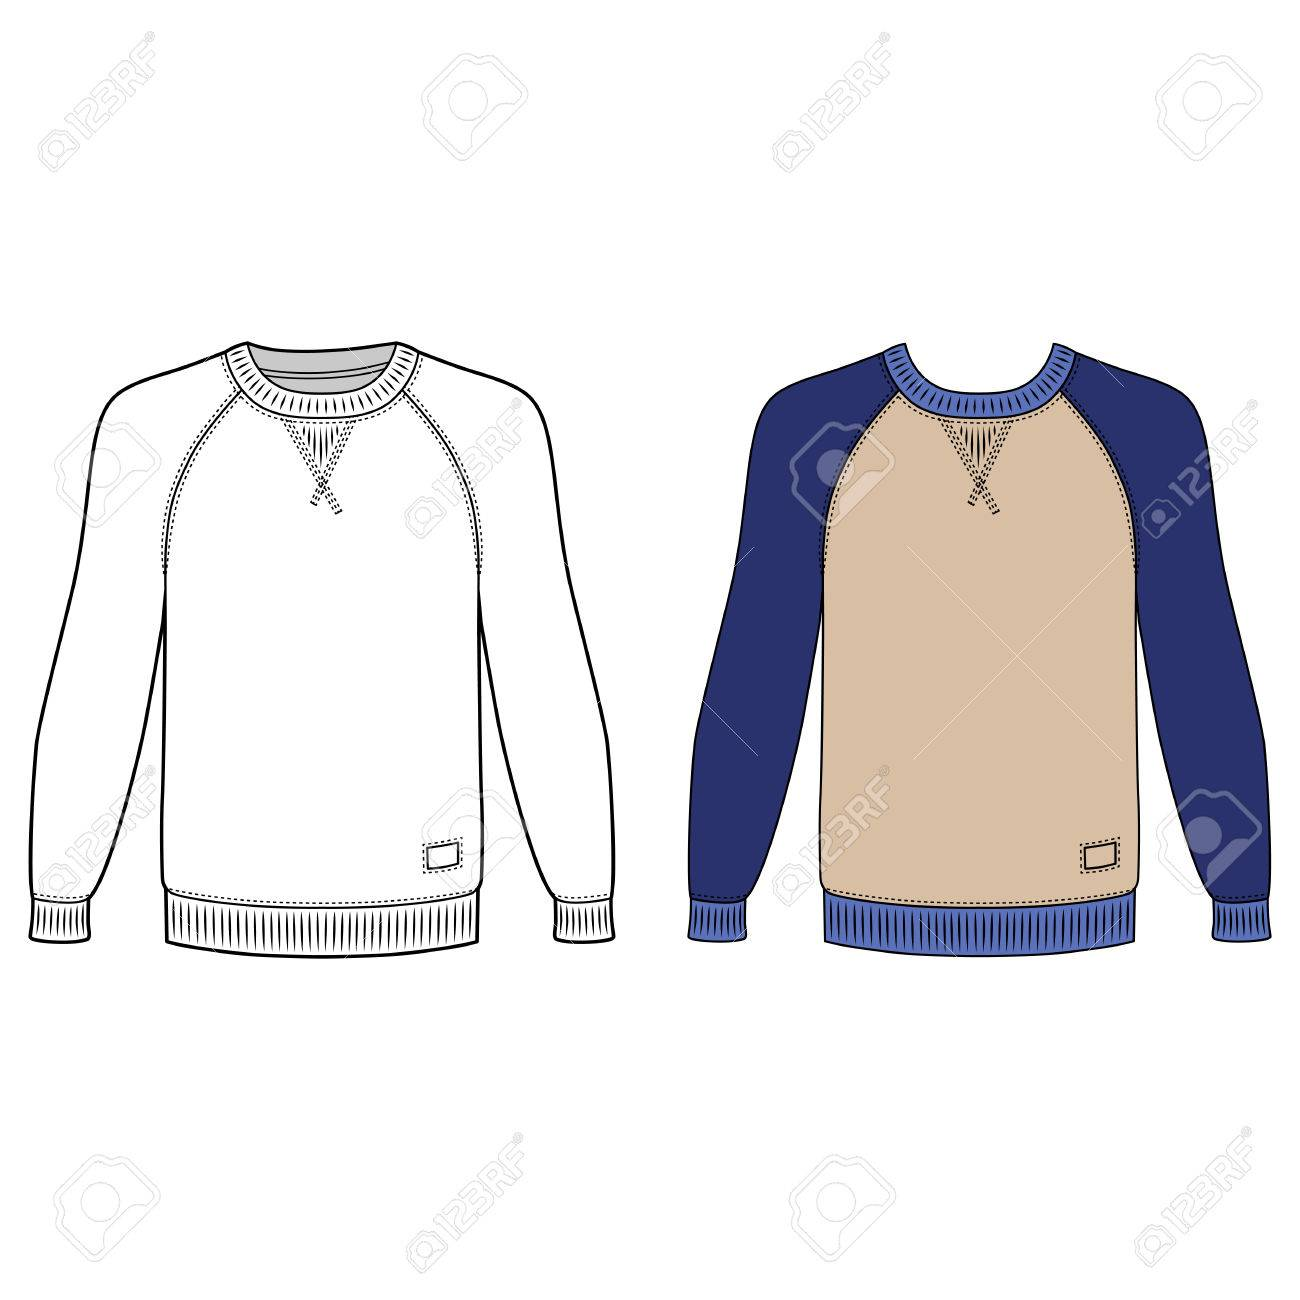 23a6249dbe0d Raglan Long Sleeve T-shirt Outlined Template (front View)